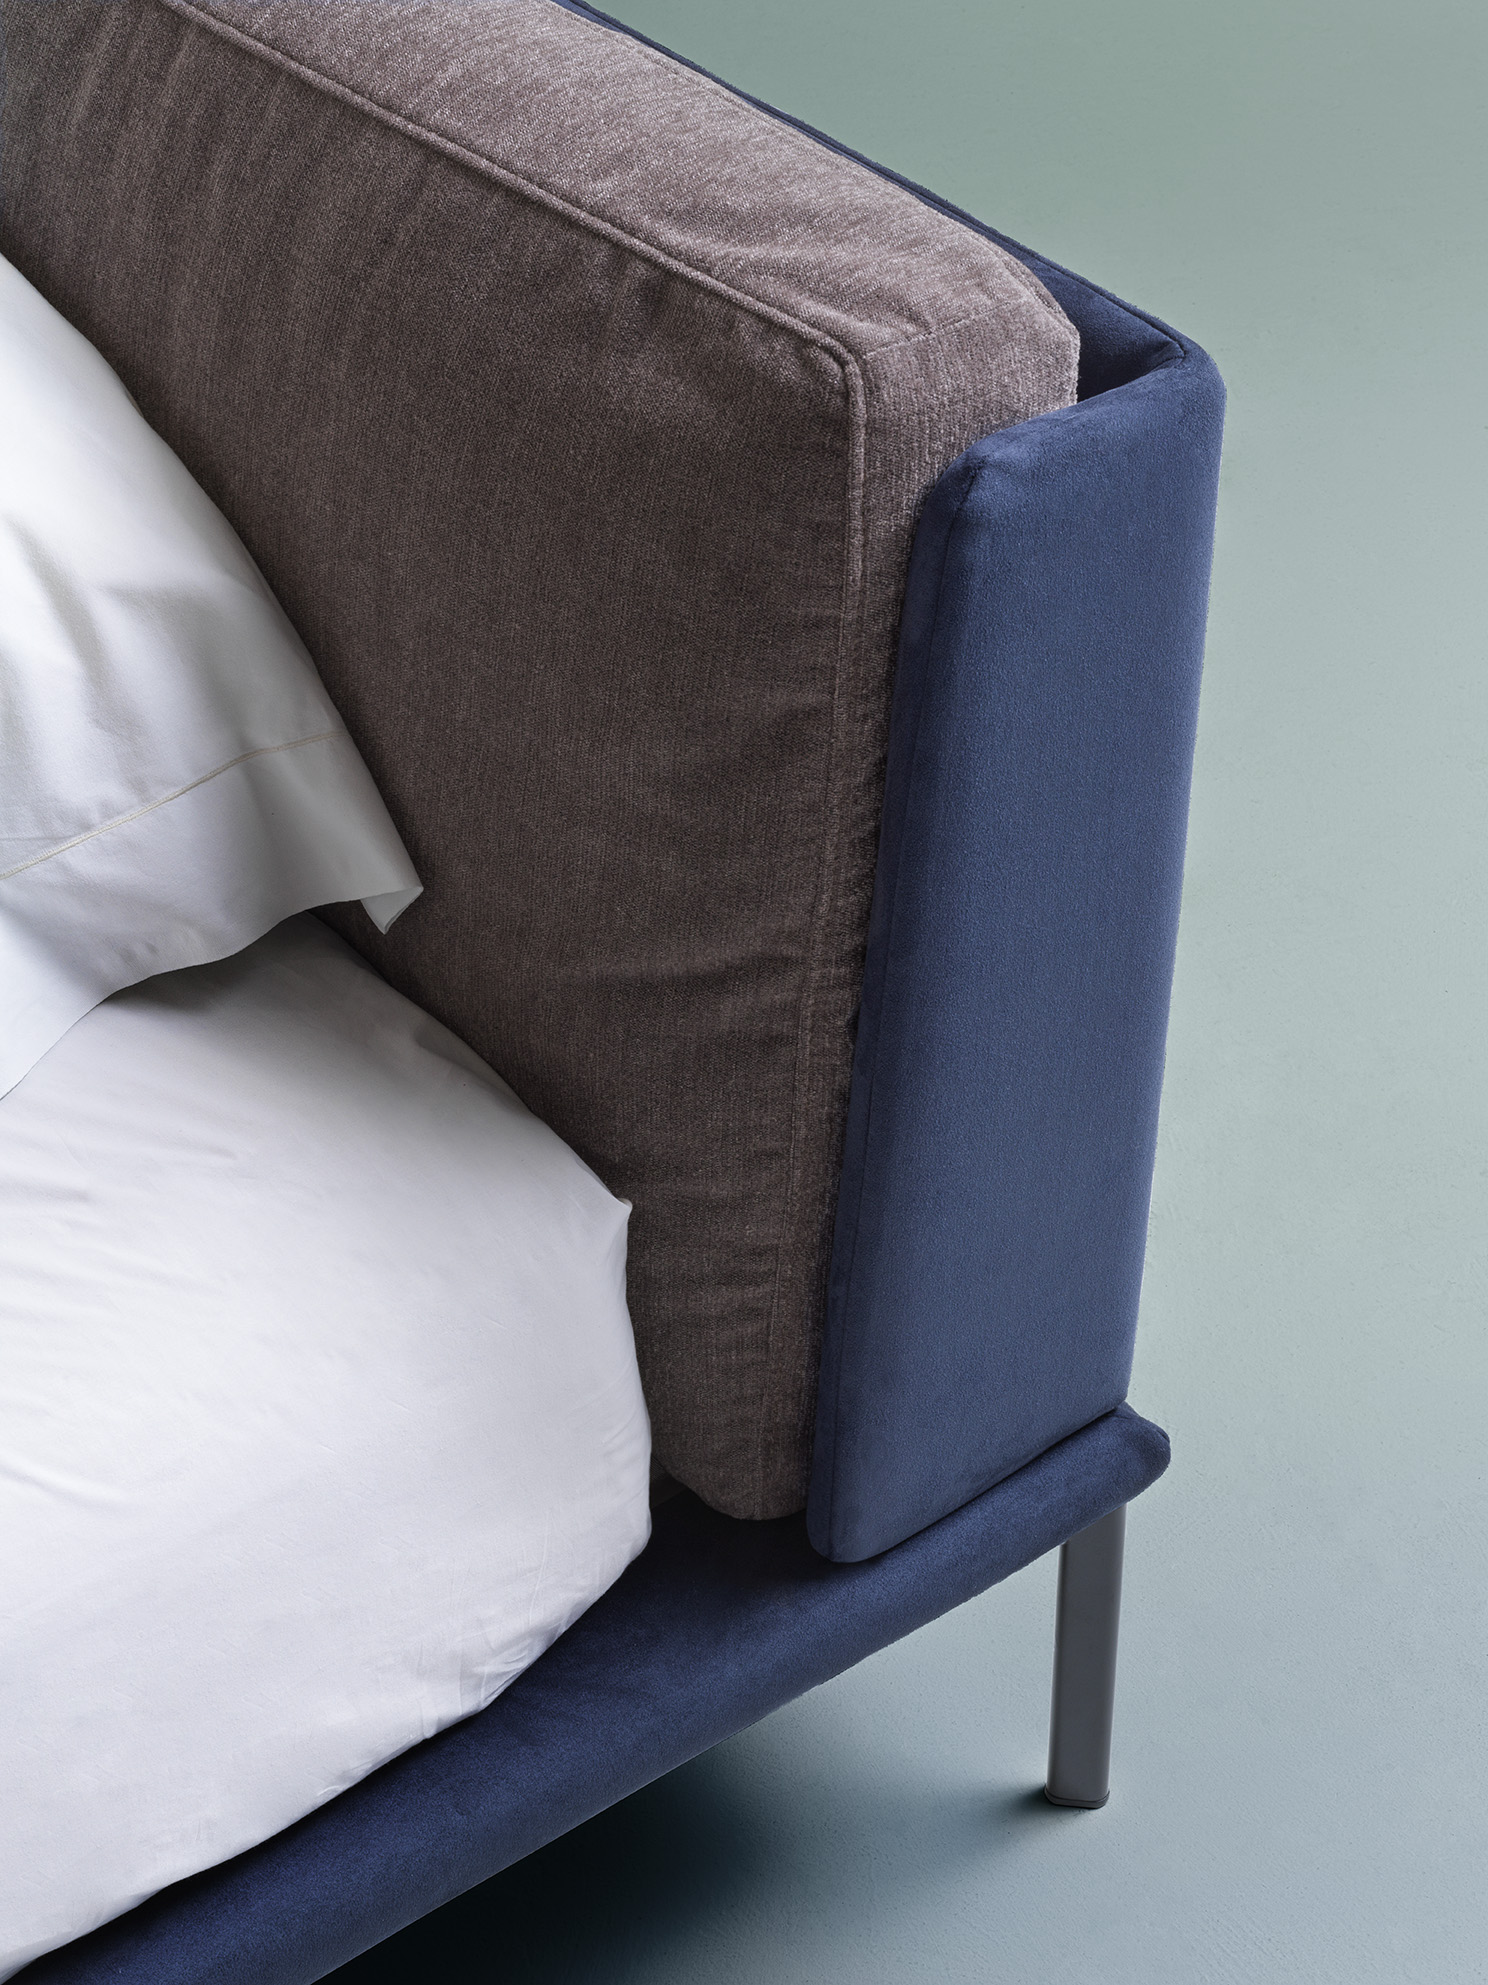 Mise Bed - <p>The primary shapes express intrinsic softness. The basic, welcoming and simple design stands the test of time.  A play of shapes and volumes come together: Mise is softness and linearity.</p> <p>A bed with removable fabric cover and Beechwood bed slats with legs in painted steel. It has a wooden headboard and the bed edges are covered with polyurethane foam and polyester fiber lining. The headboard cushions have sterilized feathers with an insert of non-deformable polyurethane foam. </p> <p>Prices vary depending on the dimensions and fabrics chosen. Mattress is not included in the price. Please enquire for full details.</p>  | Matter of Stuff